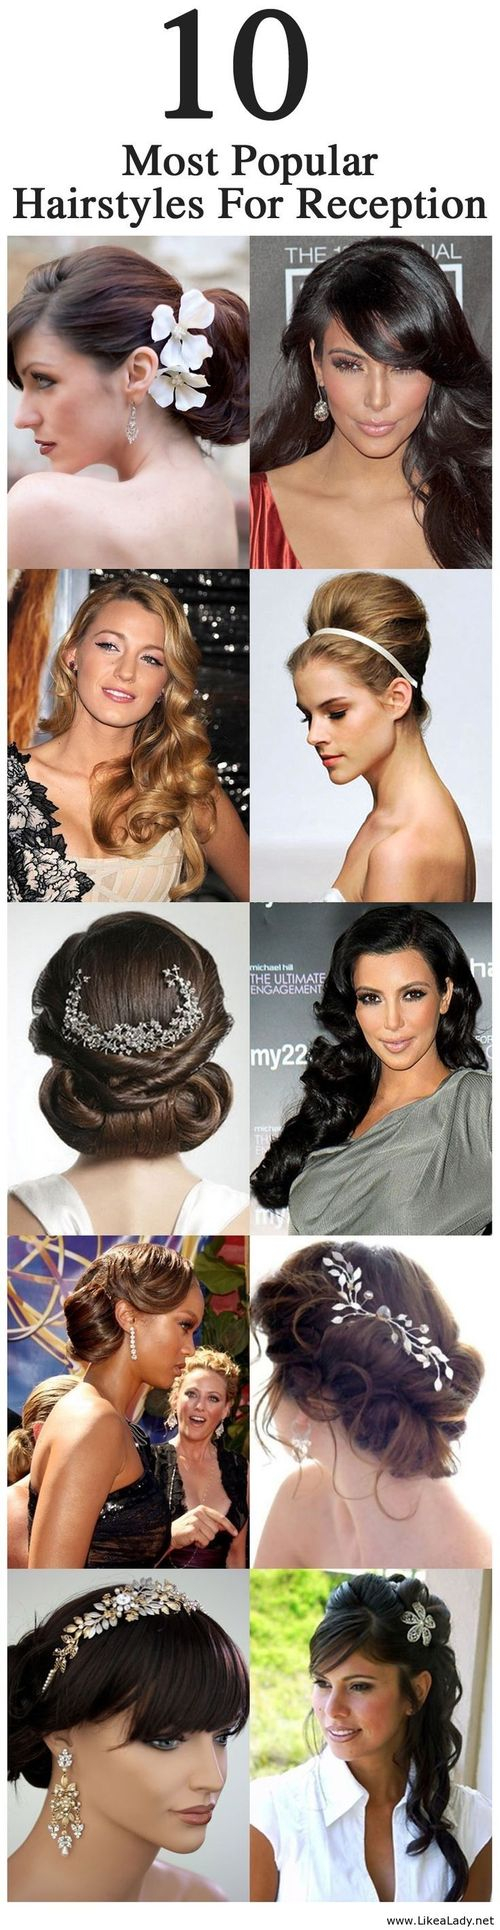 10 most popular hairstyles for reception - LikeaLady.net